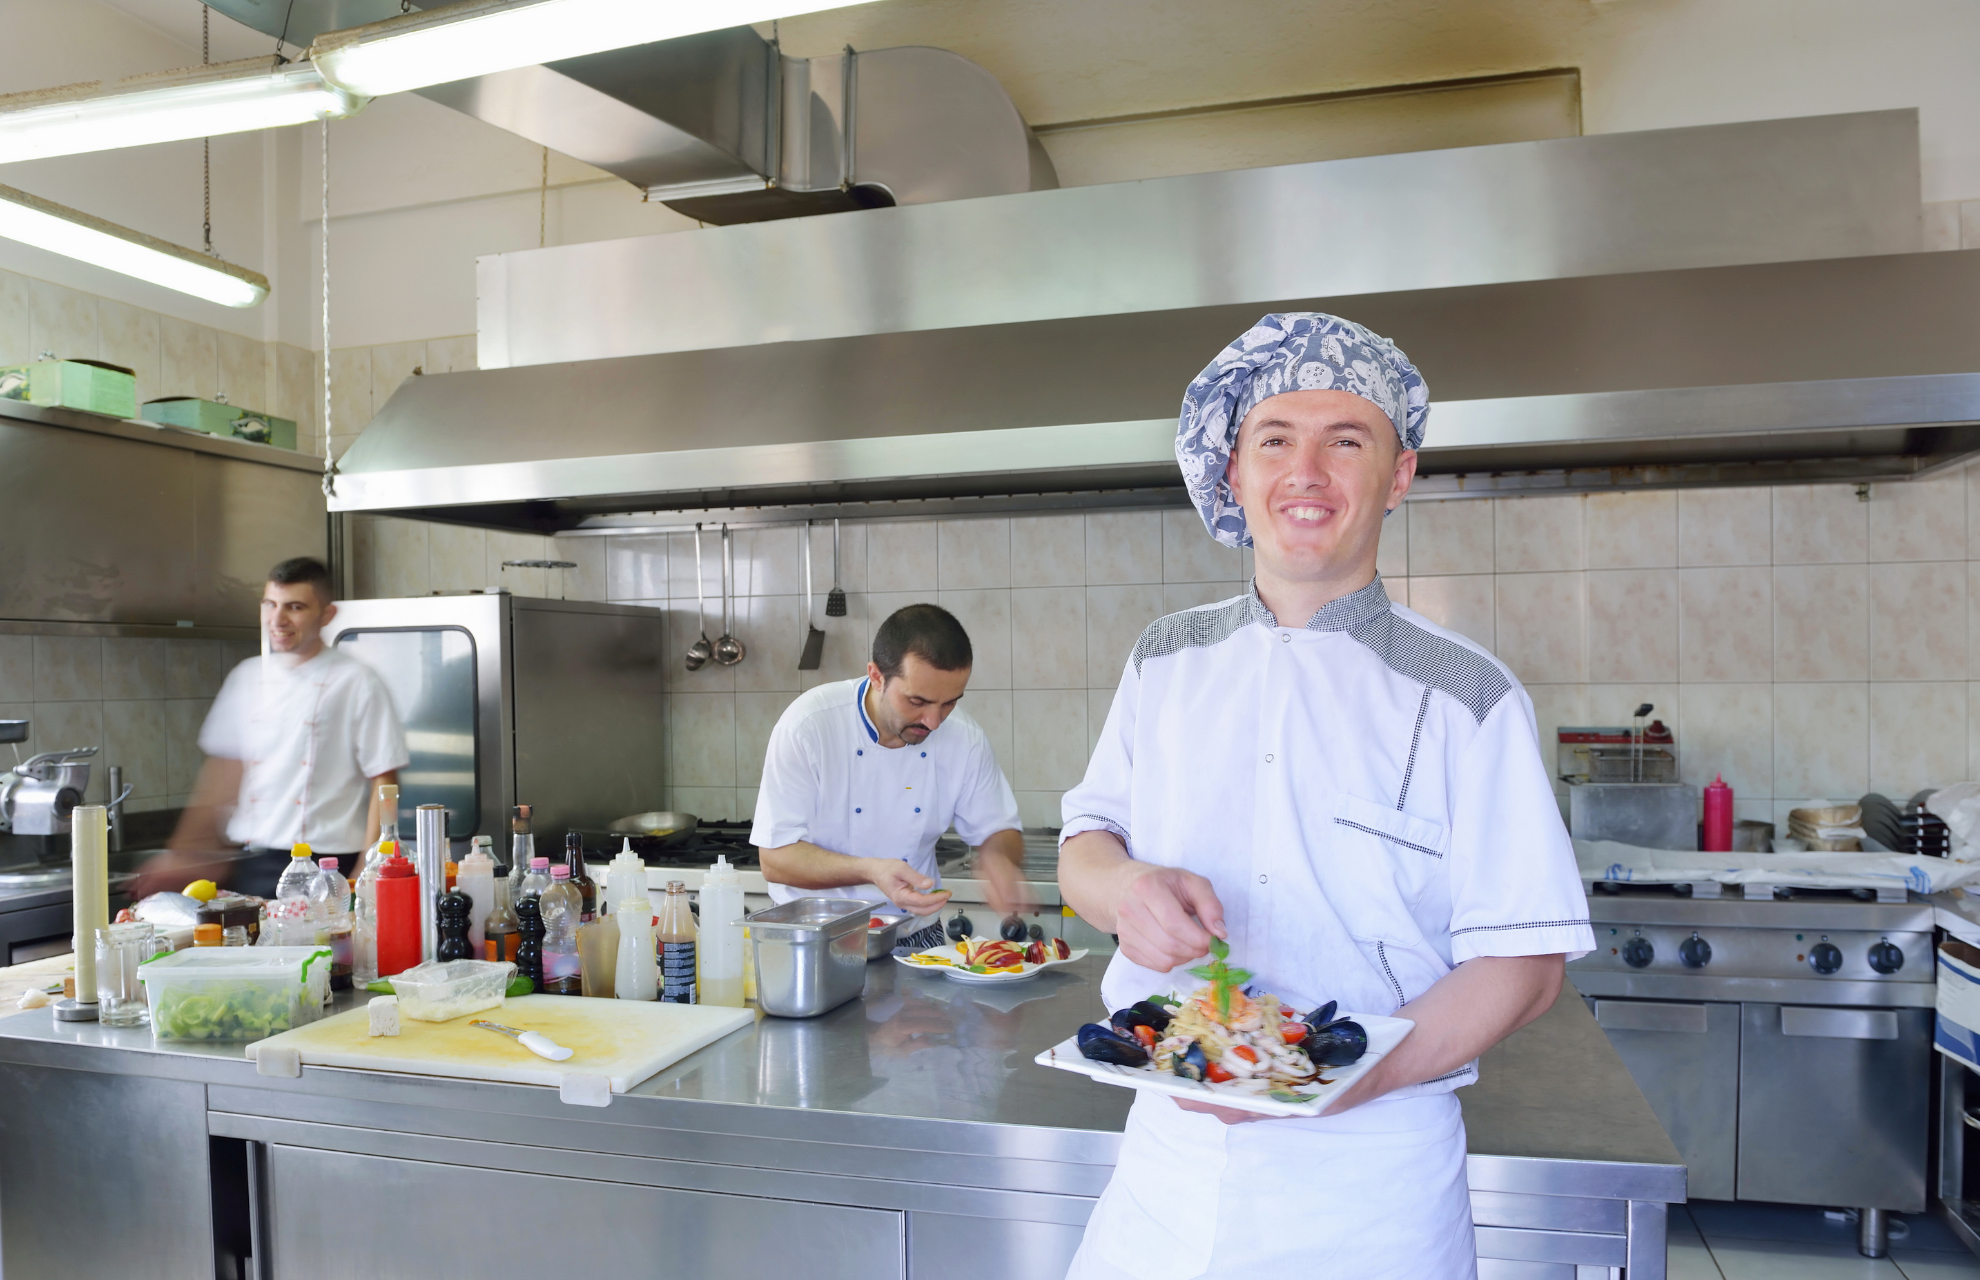 Chef Jobs Galway